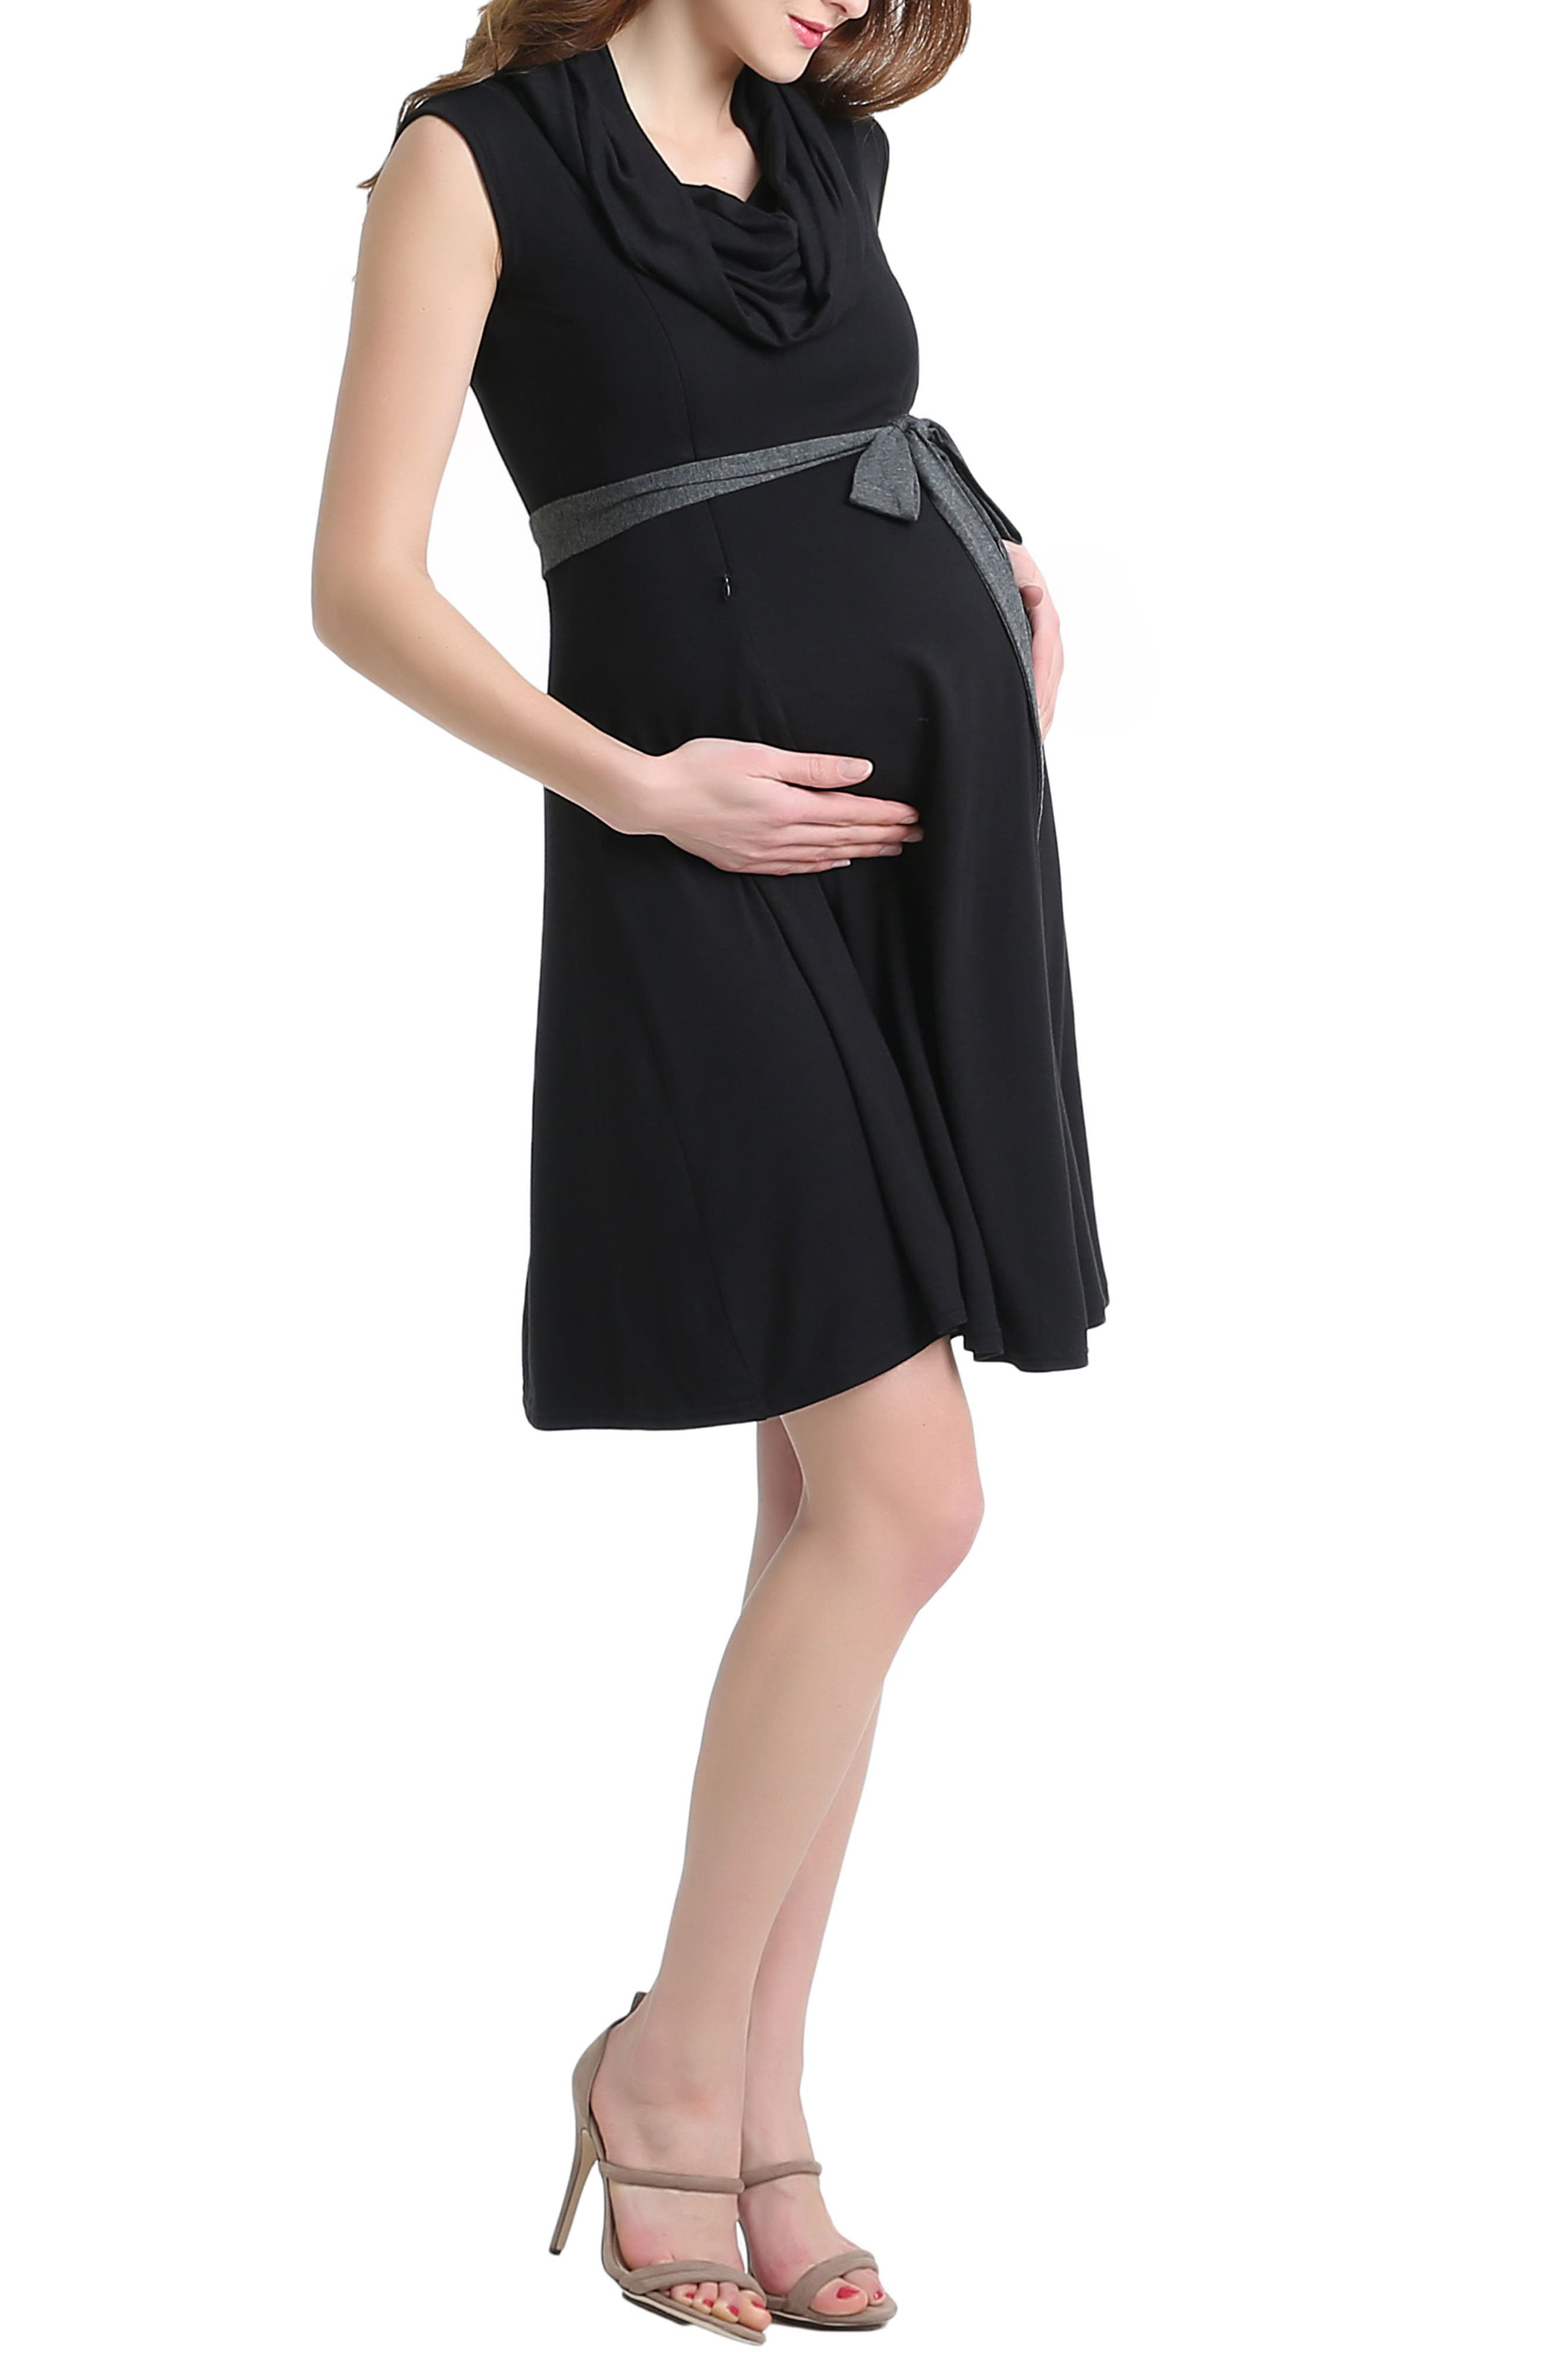 Megan Cowl Neck Maternity/Nursing Dress,                             Alternate thumbnail 4, color,                             001